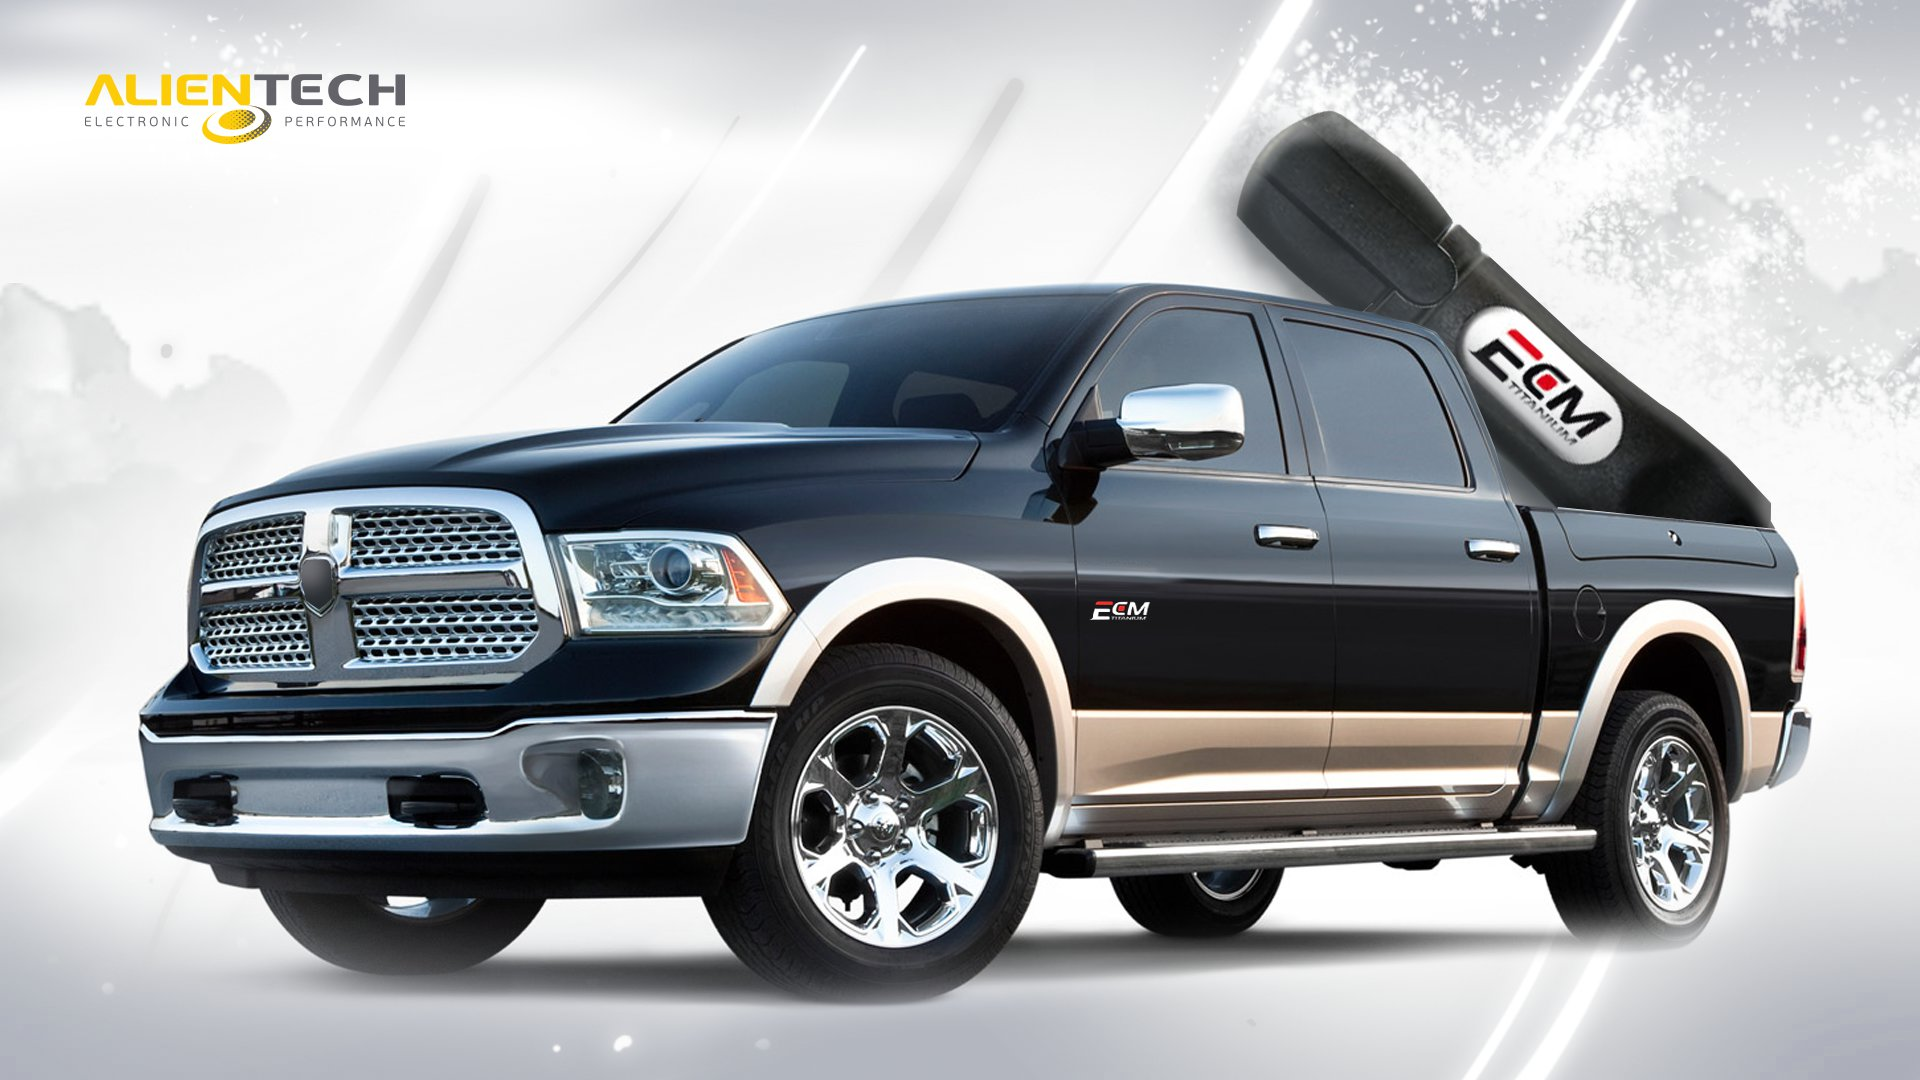 alientech usa 2014 dodge ram 1500 3 0 v6 ecodiesel. Black Bedroom Furniture Sets. Home Design Ideas